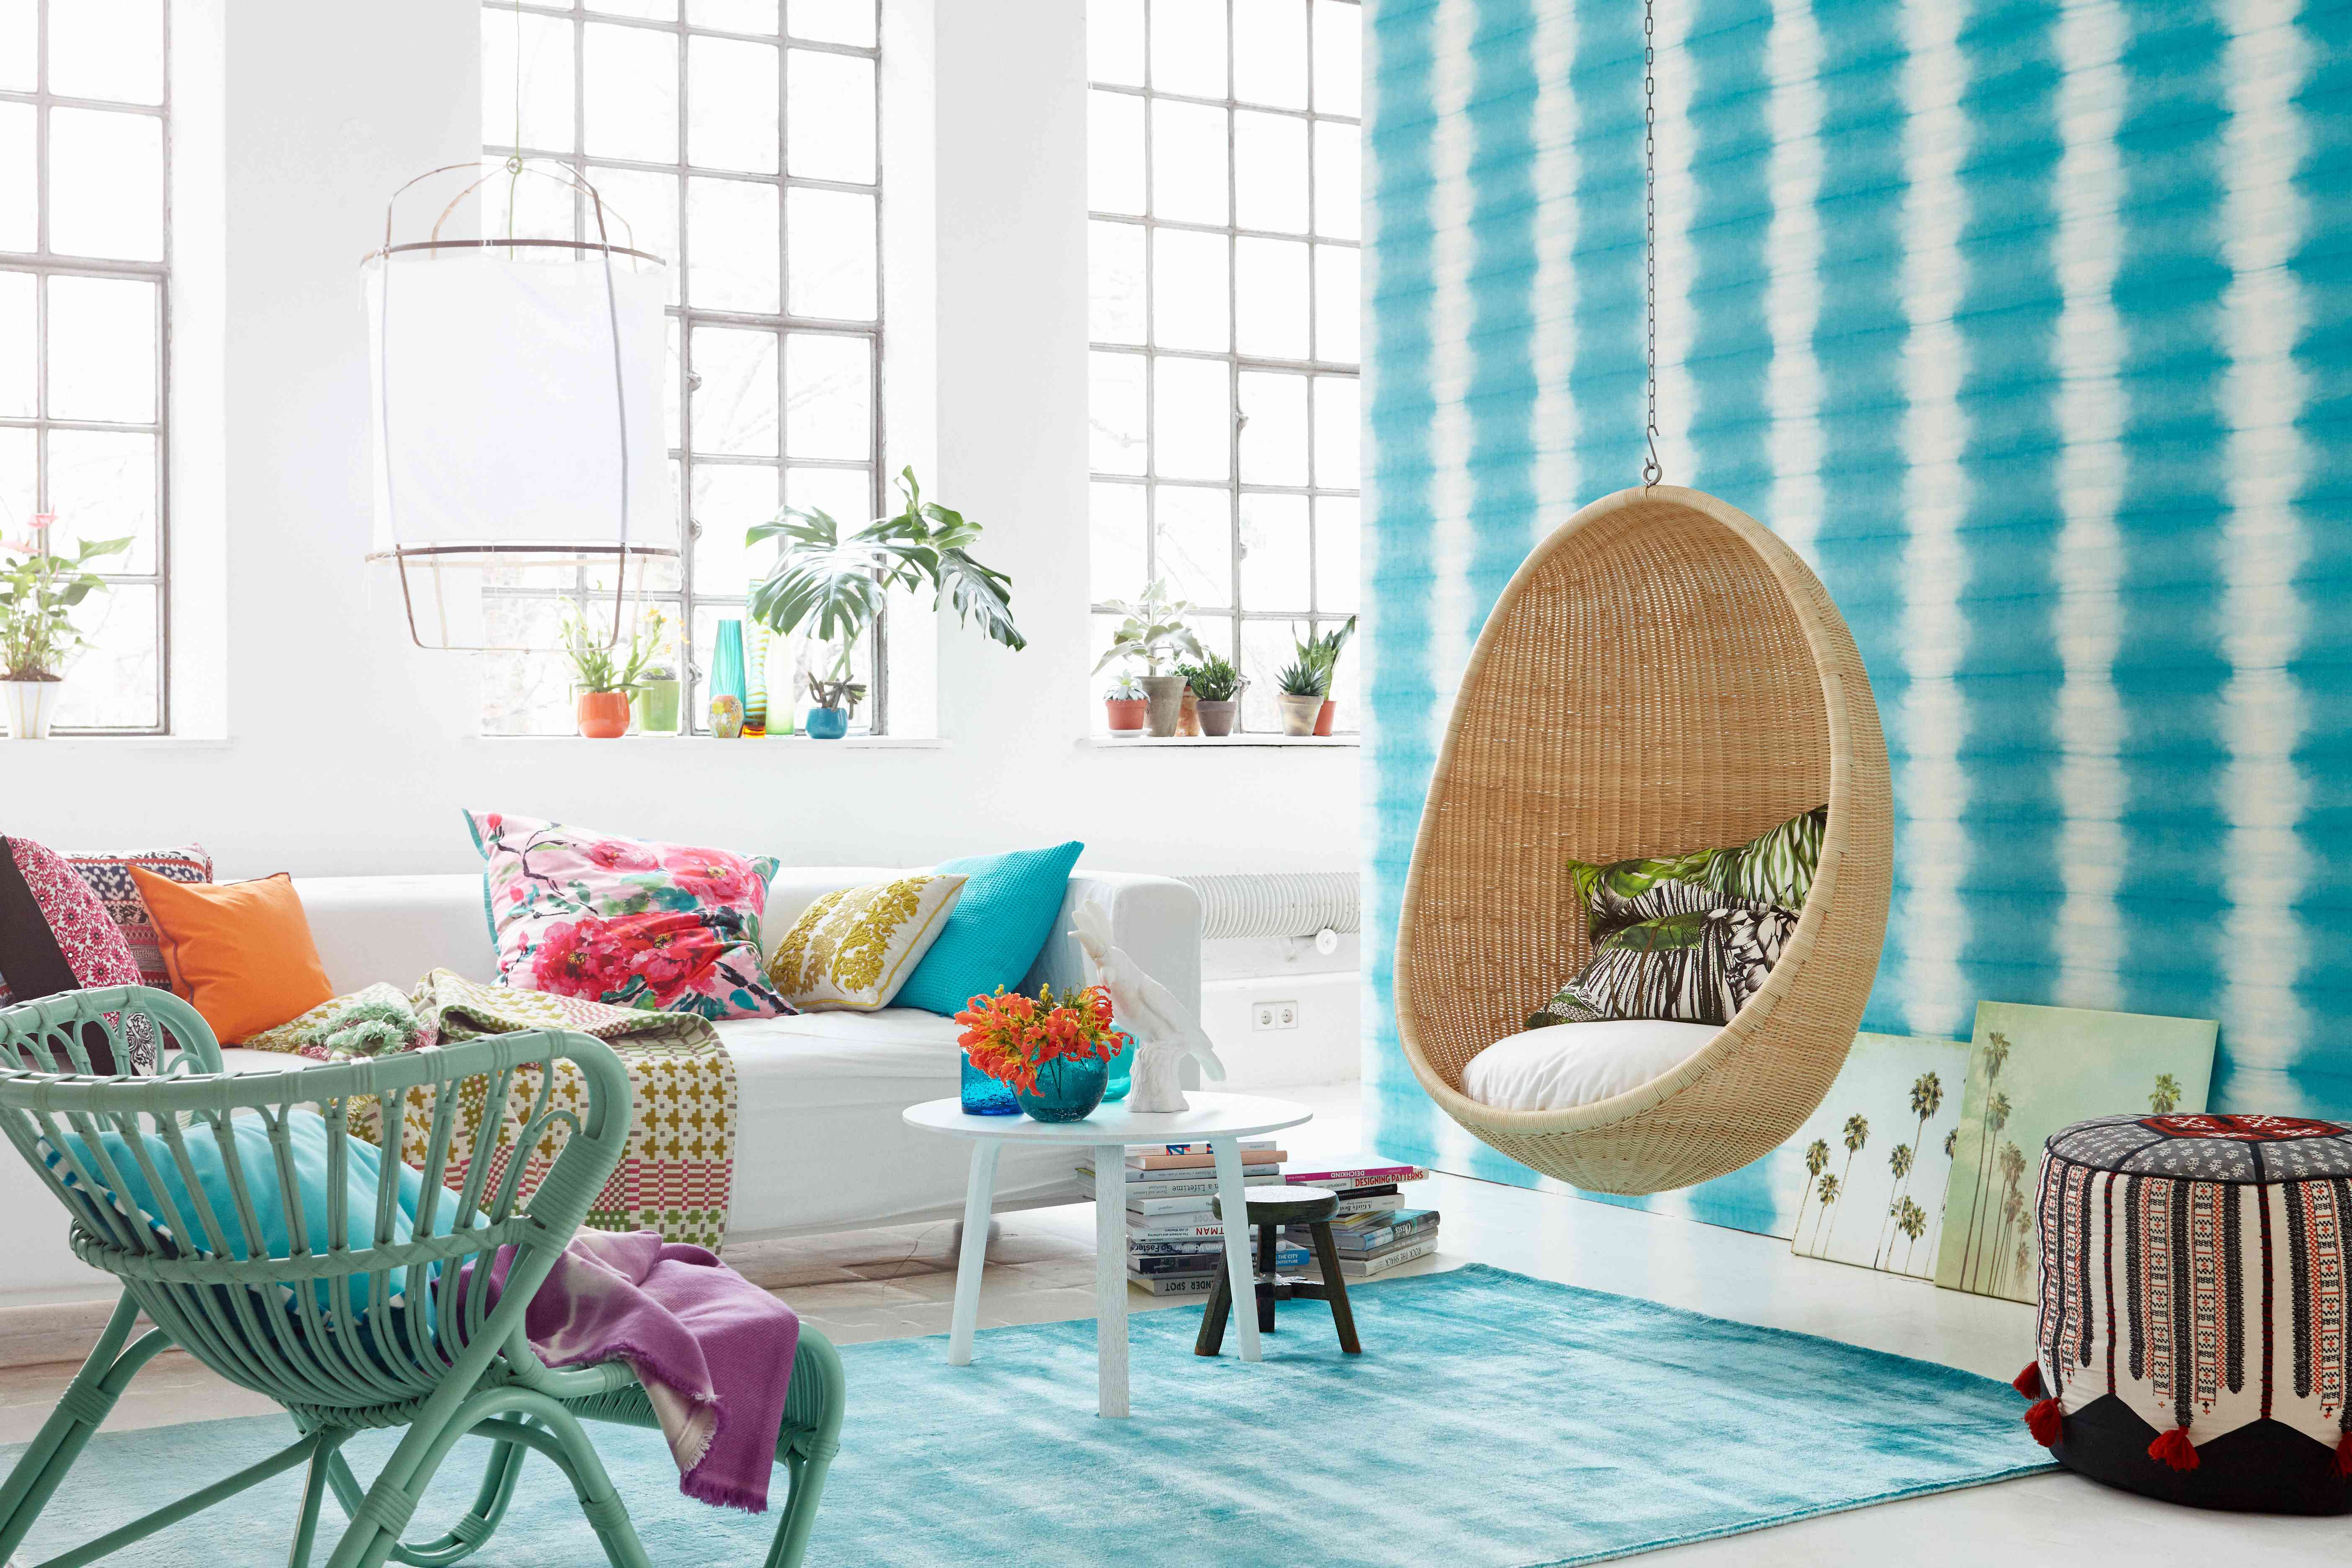 Colorful living room with rattan swing and chair